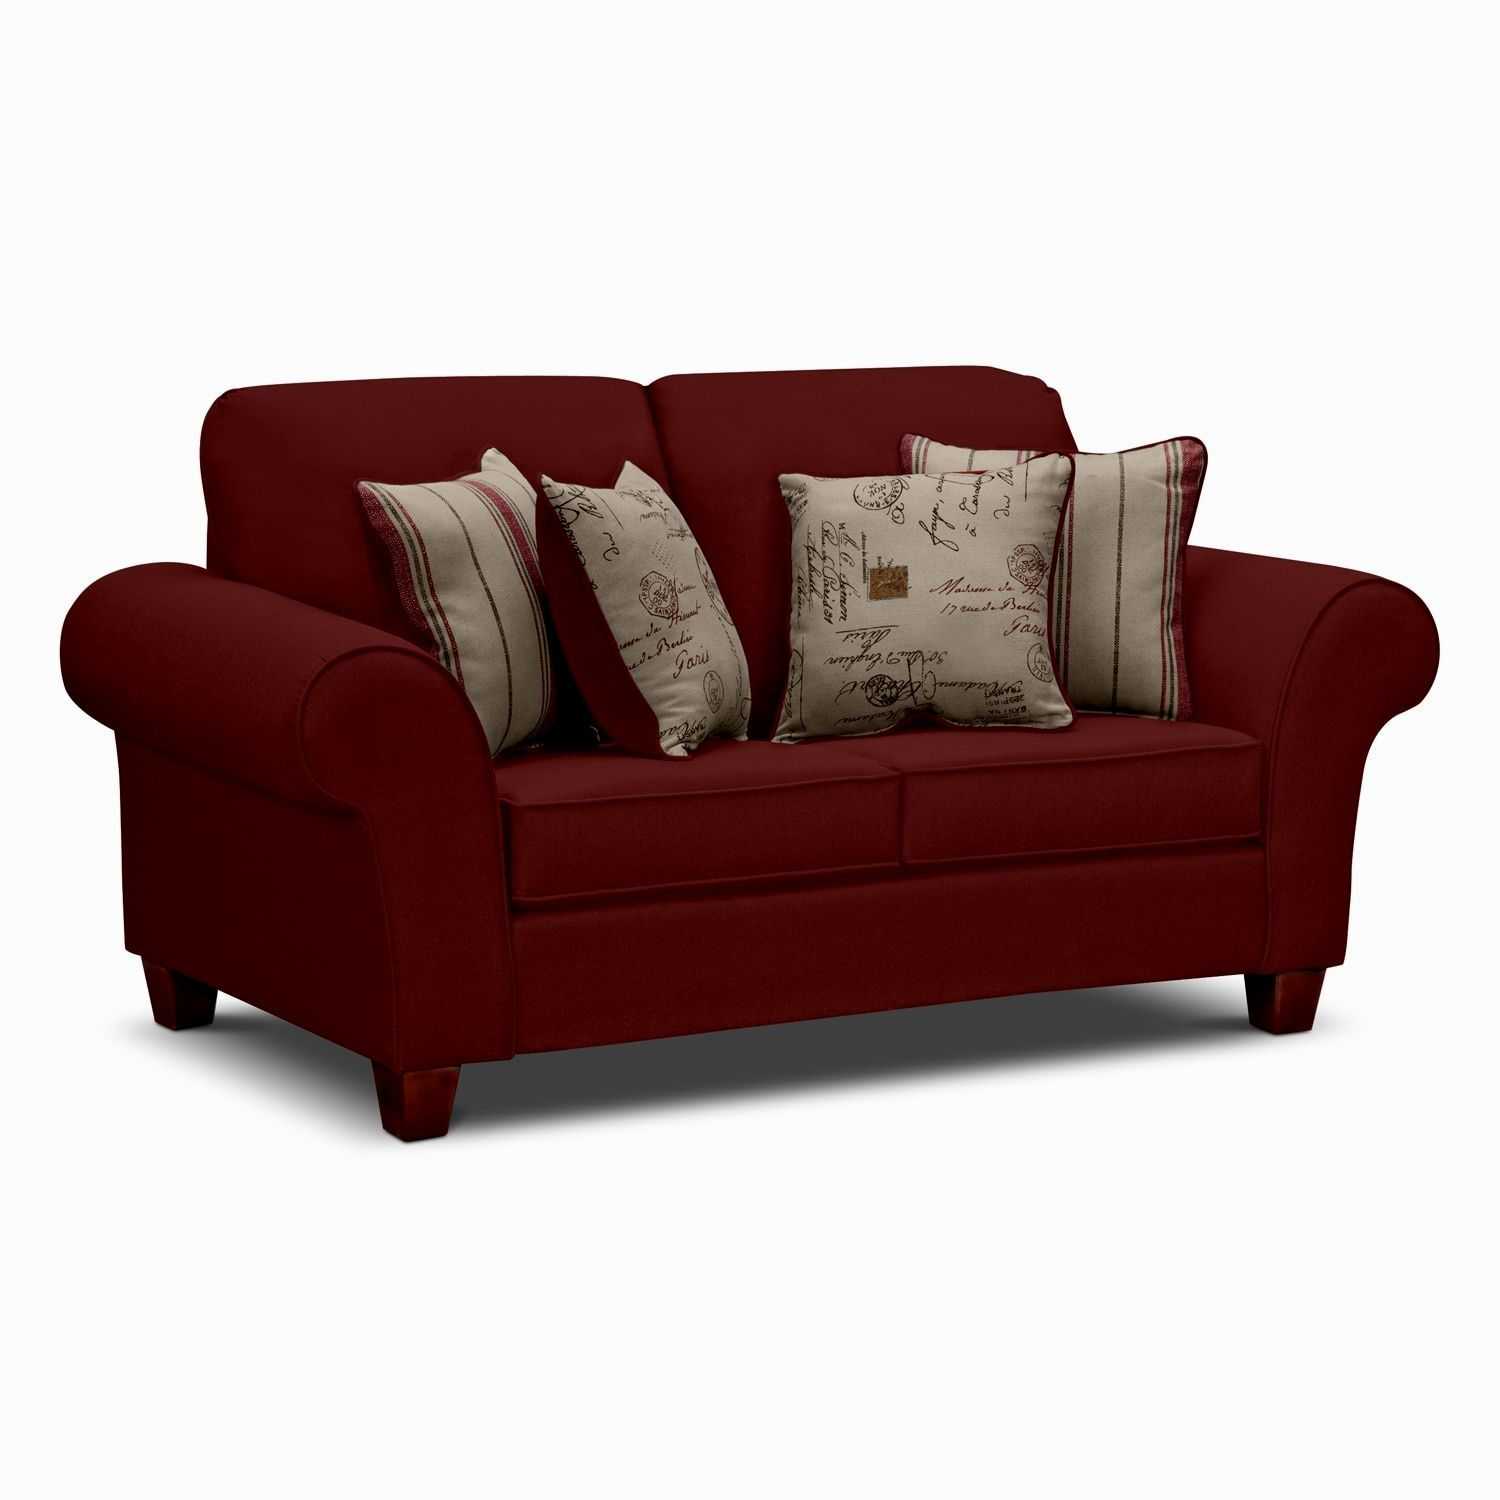 59 Reference Of Simple Sofa Set Designs In Kenya In 2020 Sofa Pillow Sets Corner Sofa Bed With Storage Simple Sofa